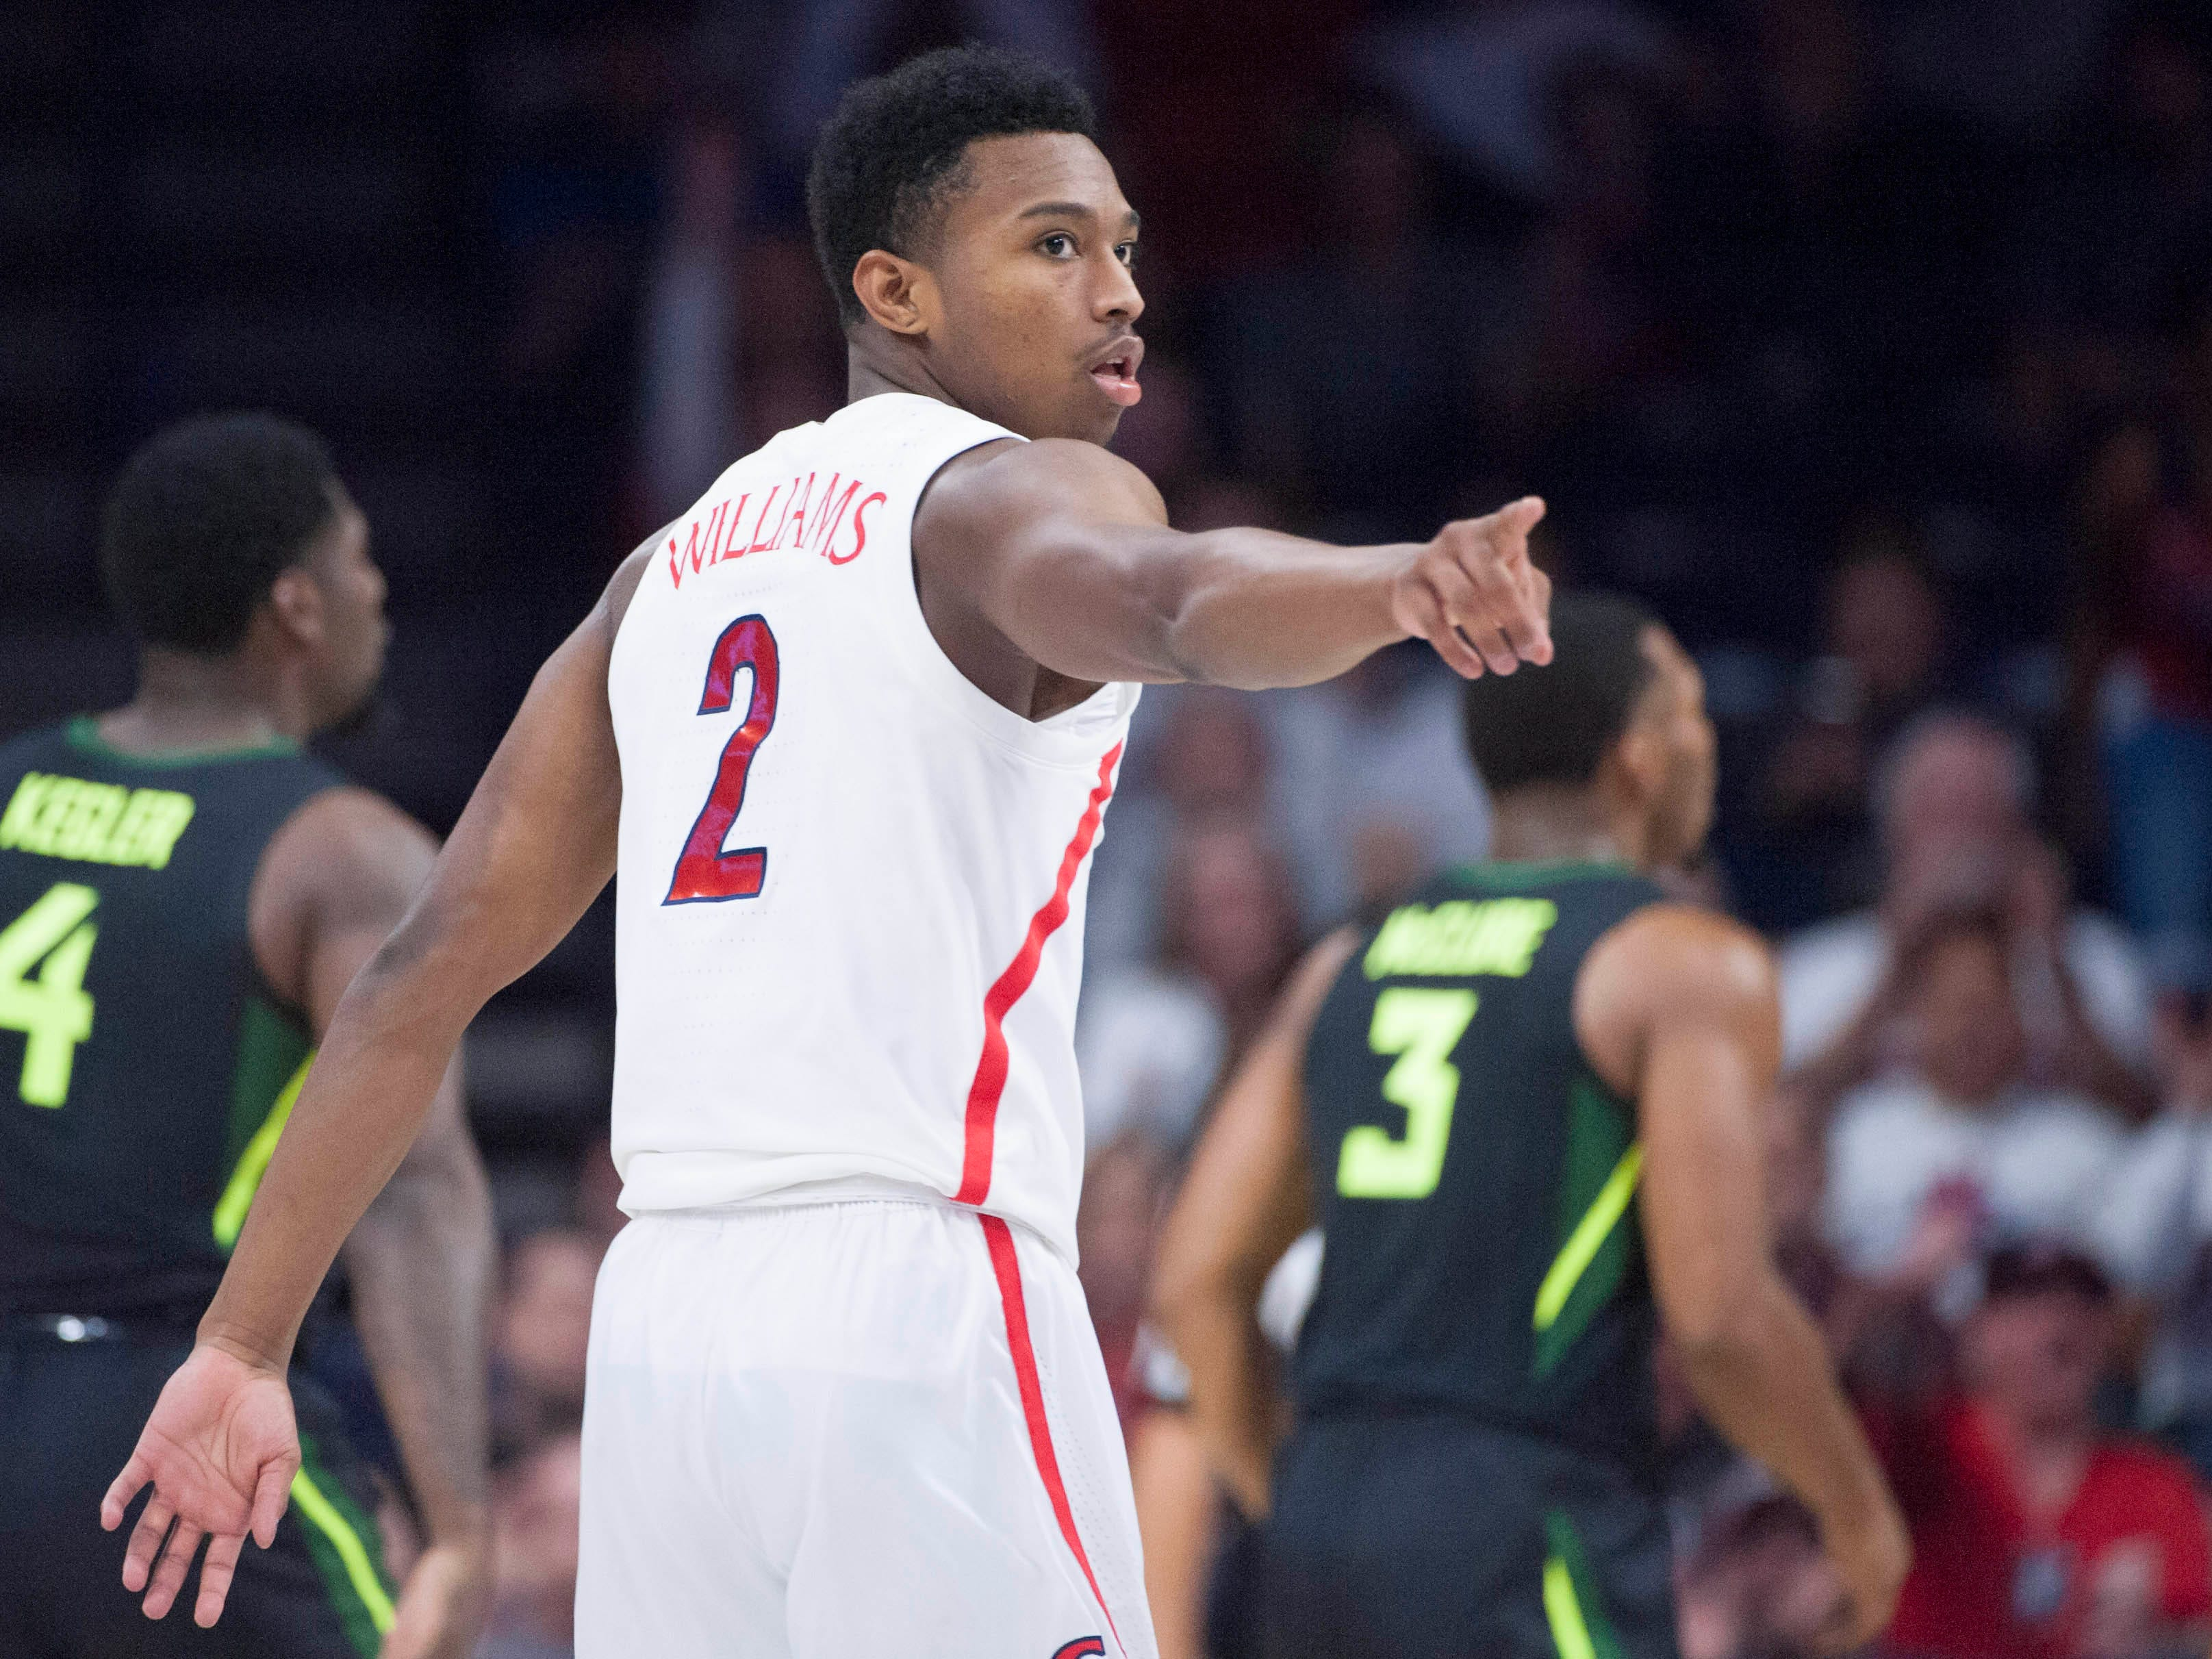 Dec 15, 2018; Tucson, AZ, USA; Arizona Wildcats guard Brandon Williams (2) points to the bench after scoring against the Baylor Bears during the first half at McKale Center.